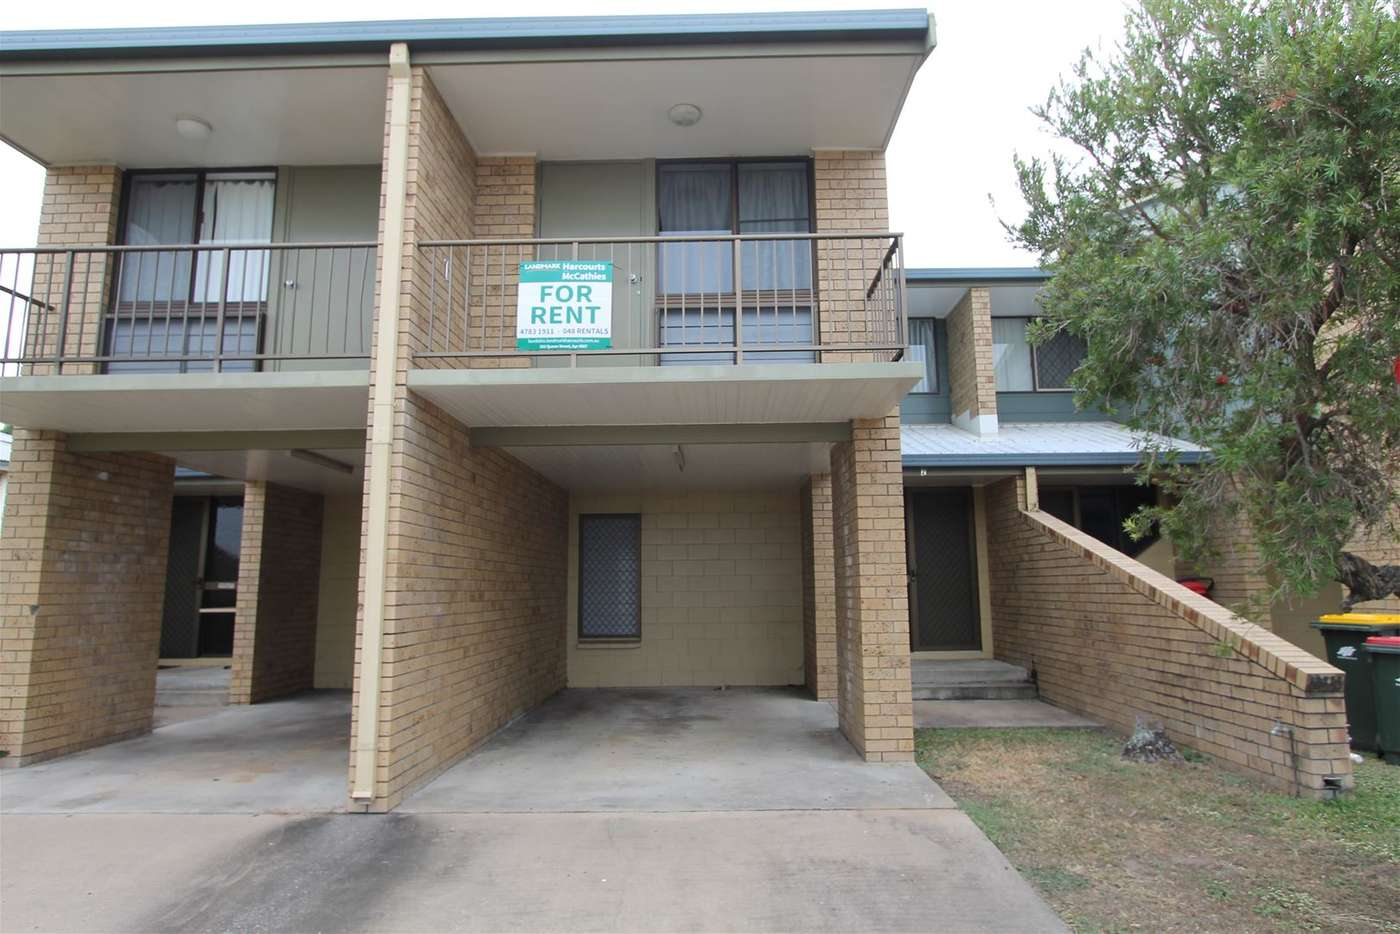 Main view of Homely townhouse listing, 2/1 Wilmington Street, Ayr QLD 4807